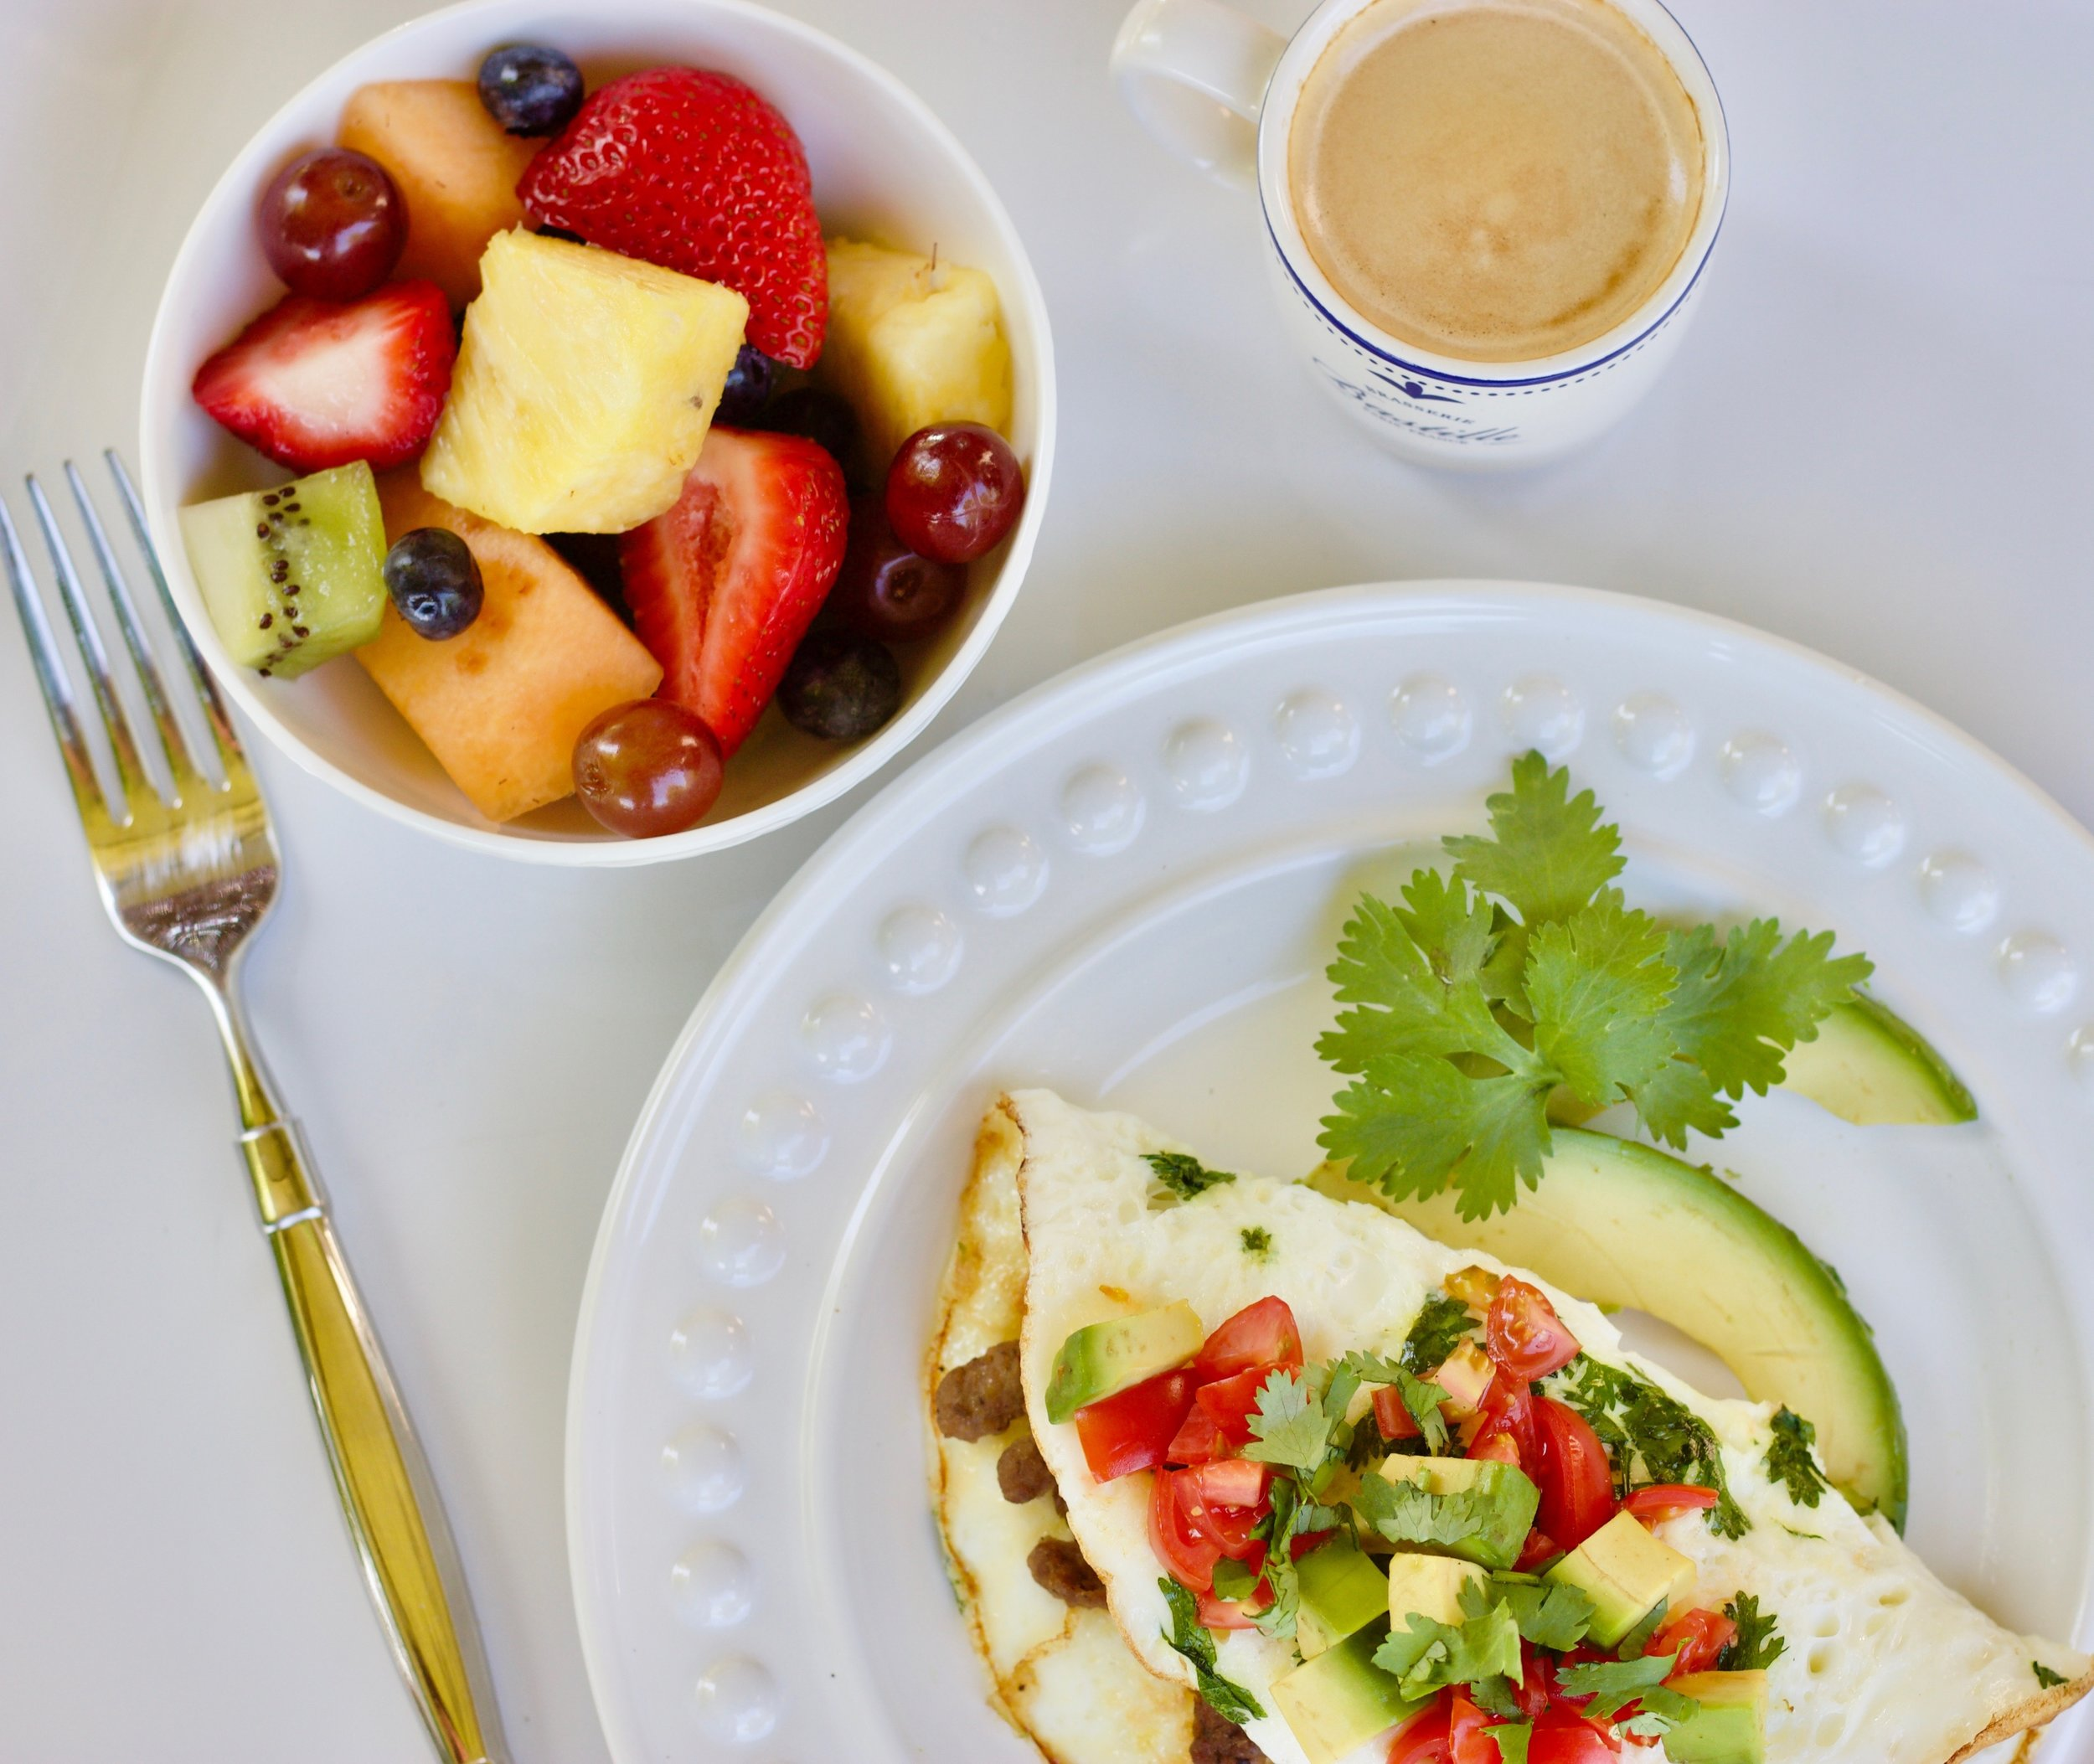 5 Reasons Why You Should Never Miss Breakfast www.cardiocoffeeandkale.com